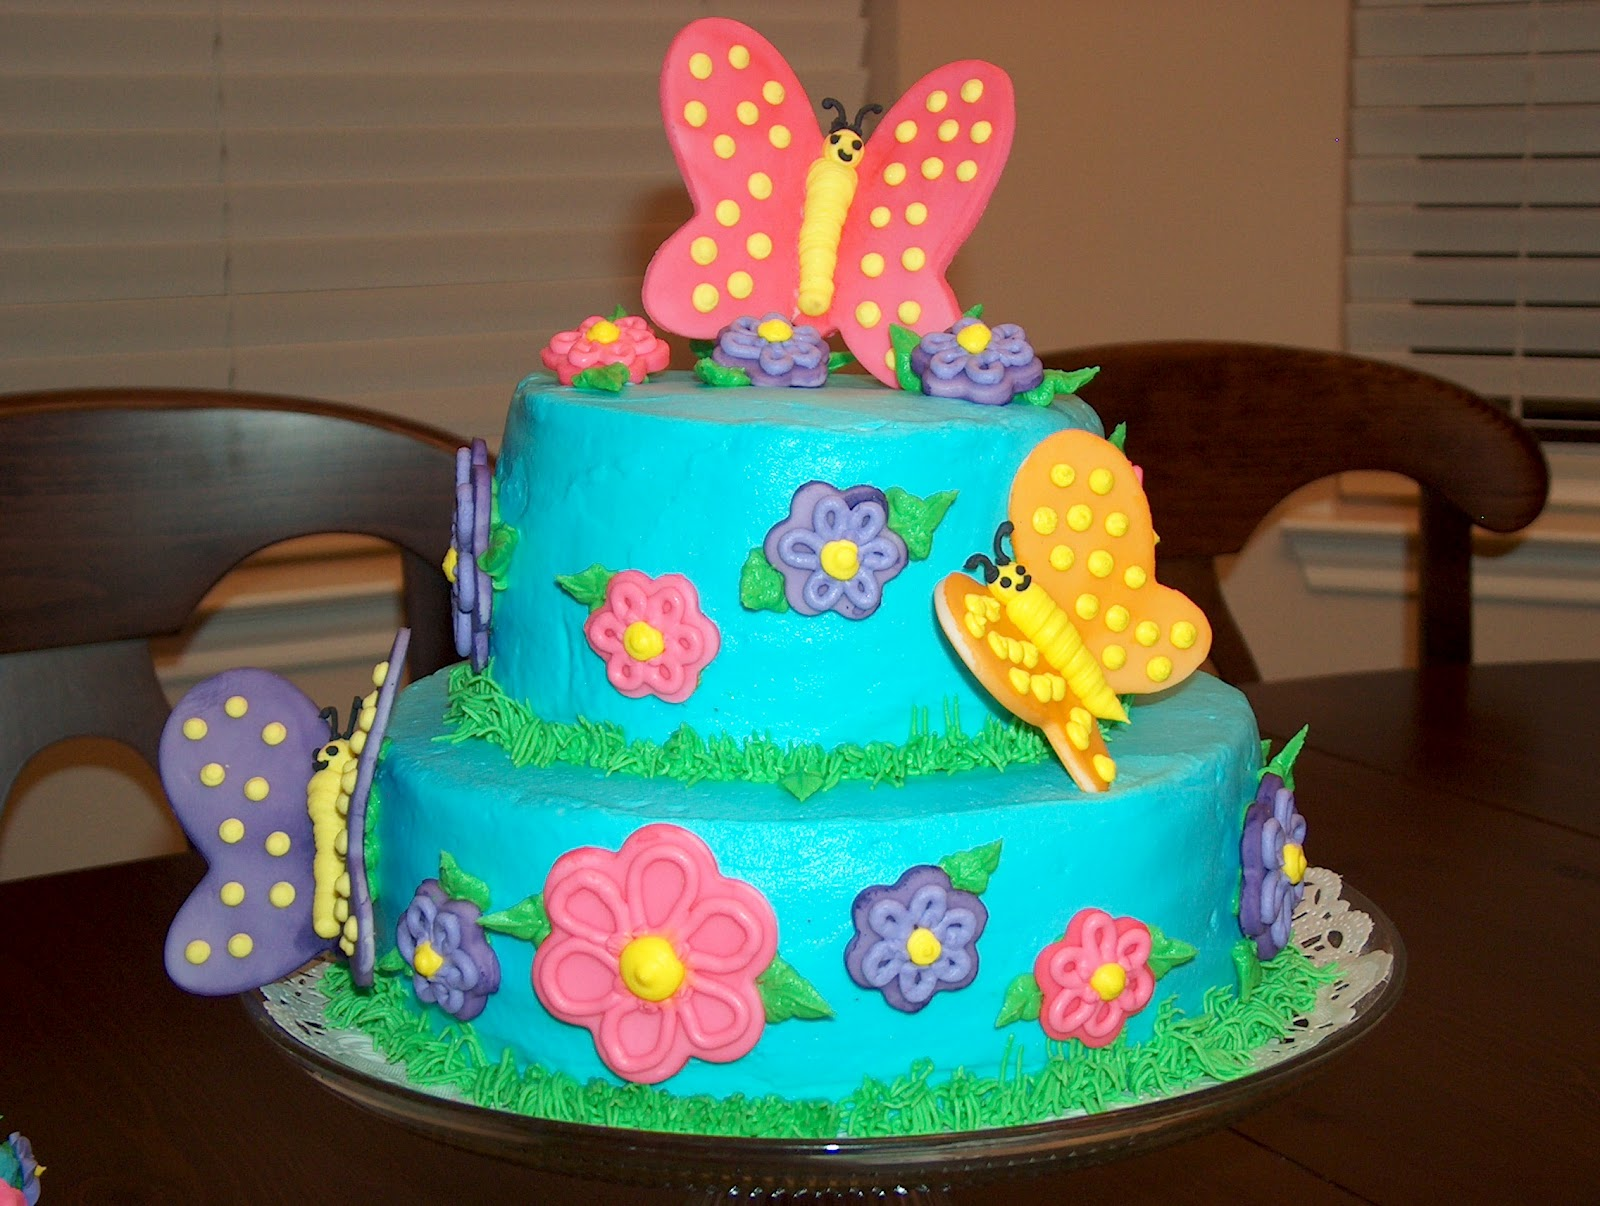 Cake Decorating Ideas Photos : Themed Cakes, Birthday Cakes, Wedding Cakes: ButterFly ...